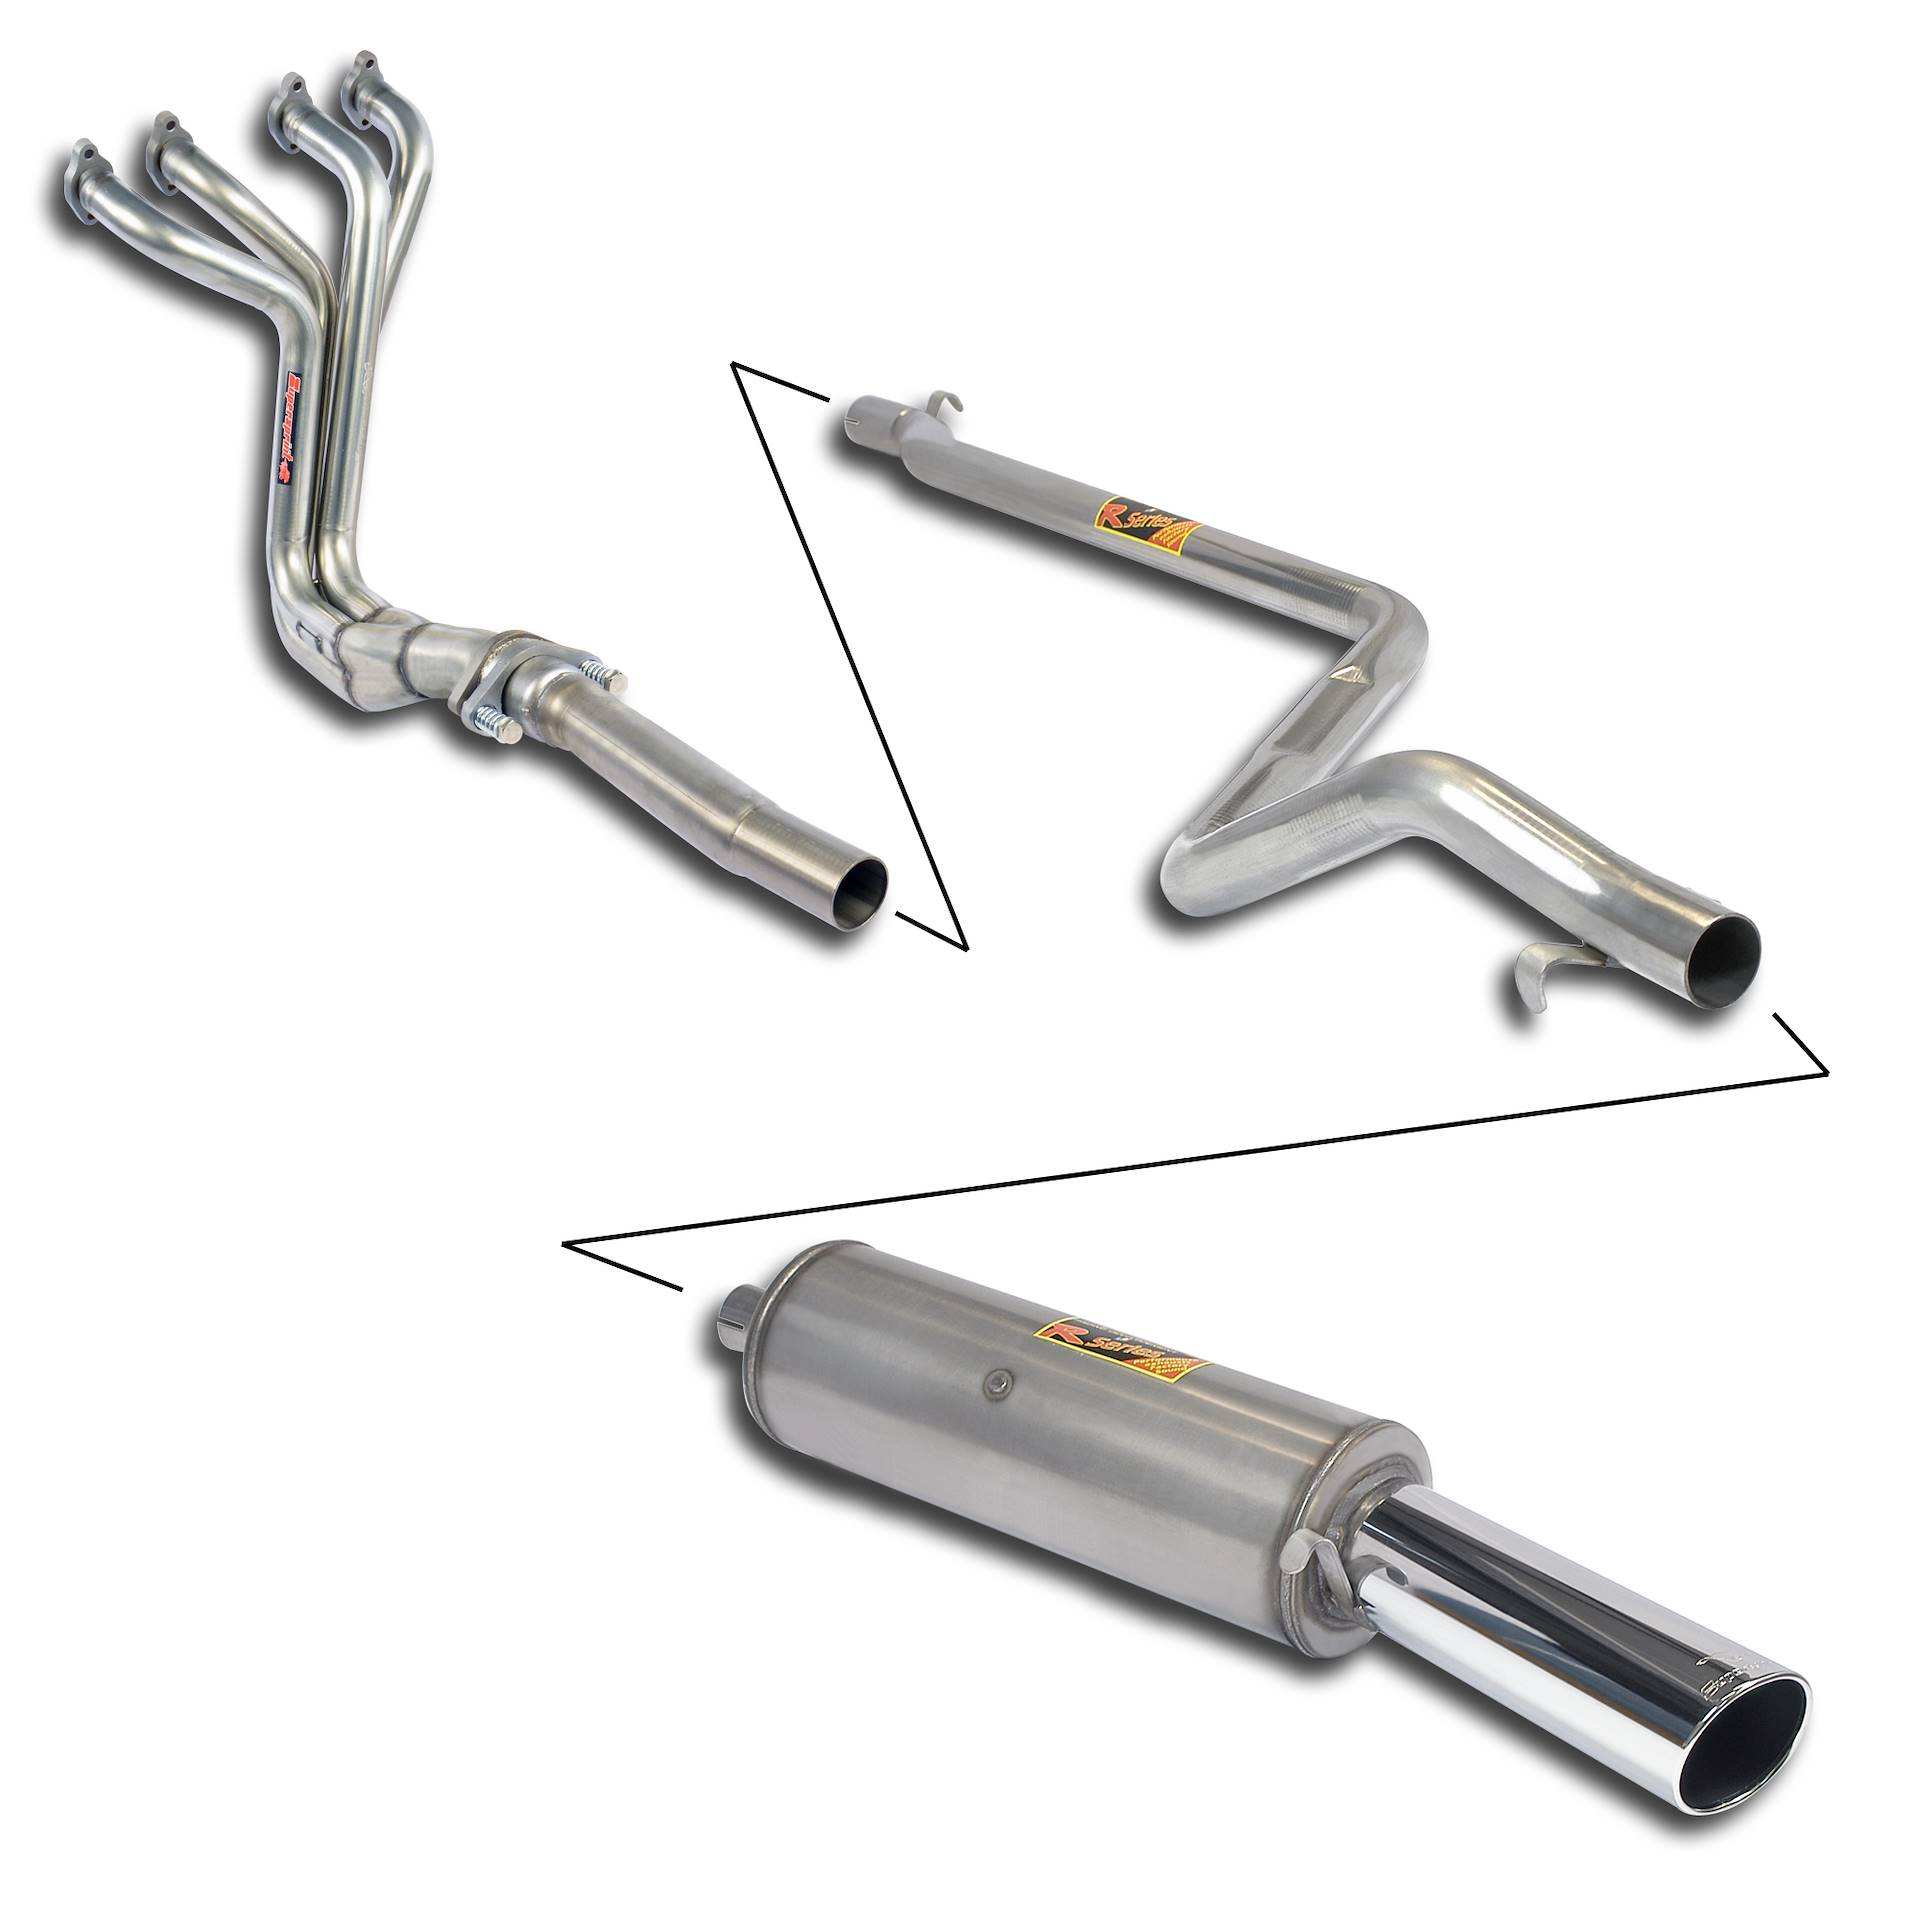 "Volkswagen - VW GOLF I GTi 1.8  8/'82 -> 11/'83 Sport performance pack ""4-1"", performance exhaust systems"